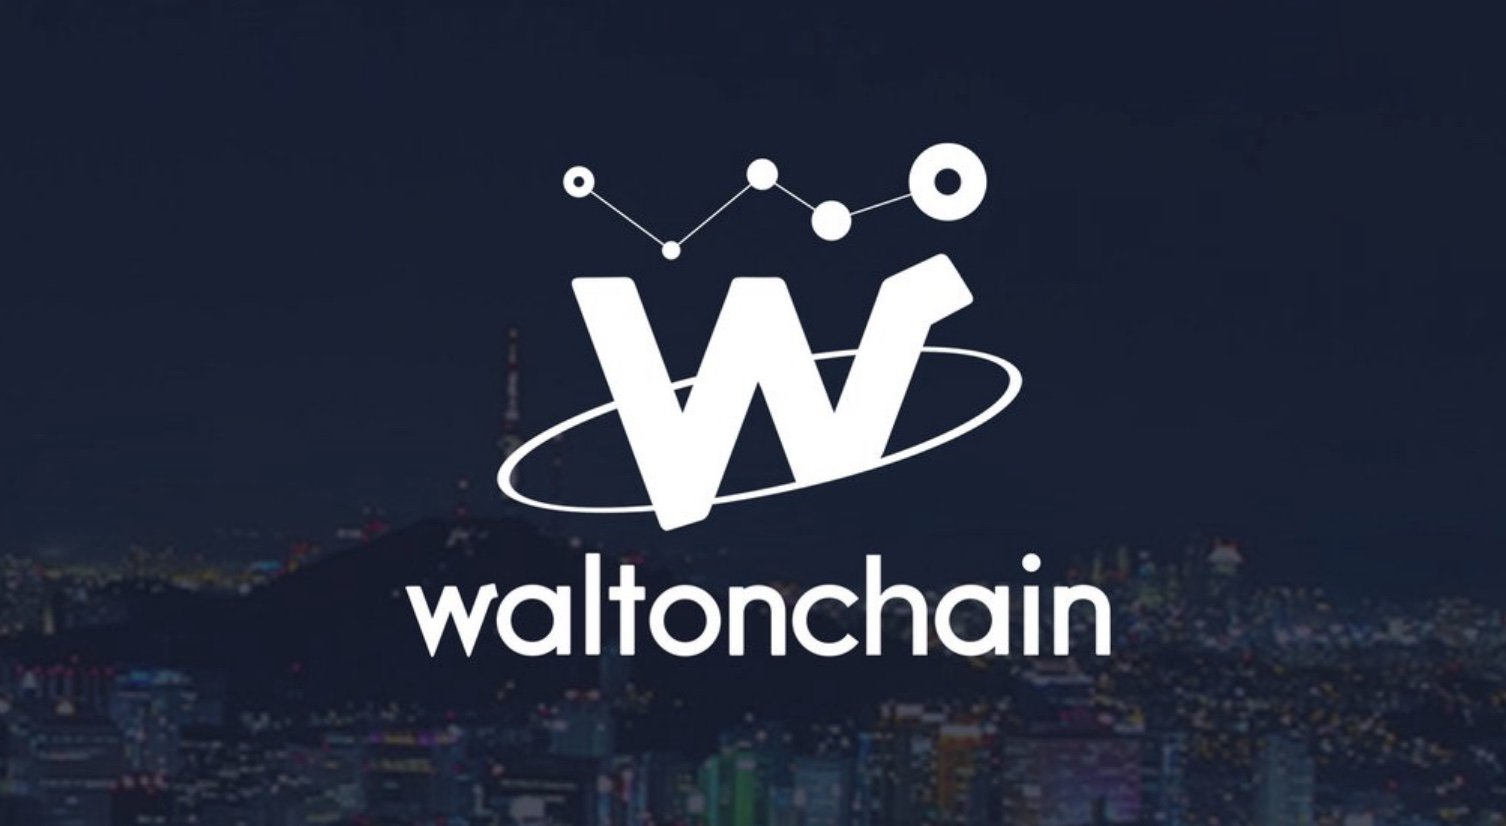 Waltonchain (WTC) Follows Ripple (XRP), Launches World's First Blockchain Research Institute 13